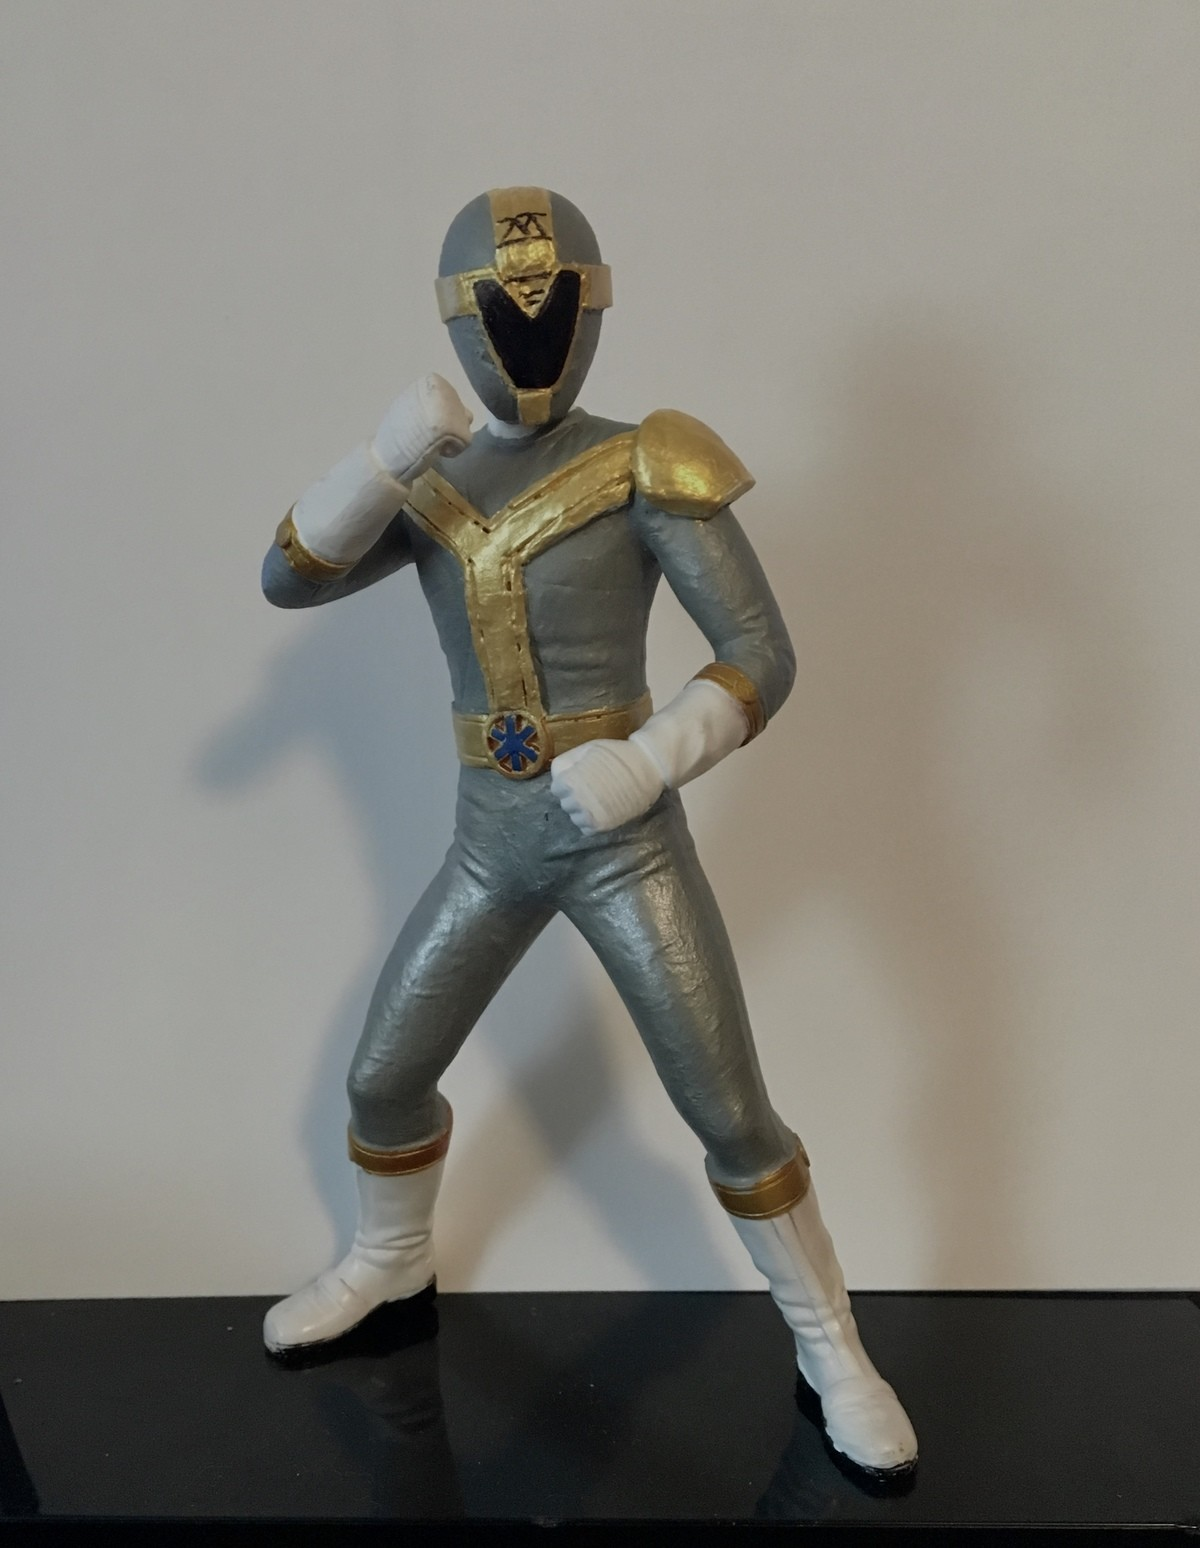 Titanium Ranger. Finished up my titanium ranger figure! It turned out great! So happy with the final result. Now Hasbro needs to make a titanium ranger for the